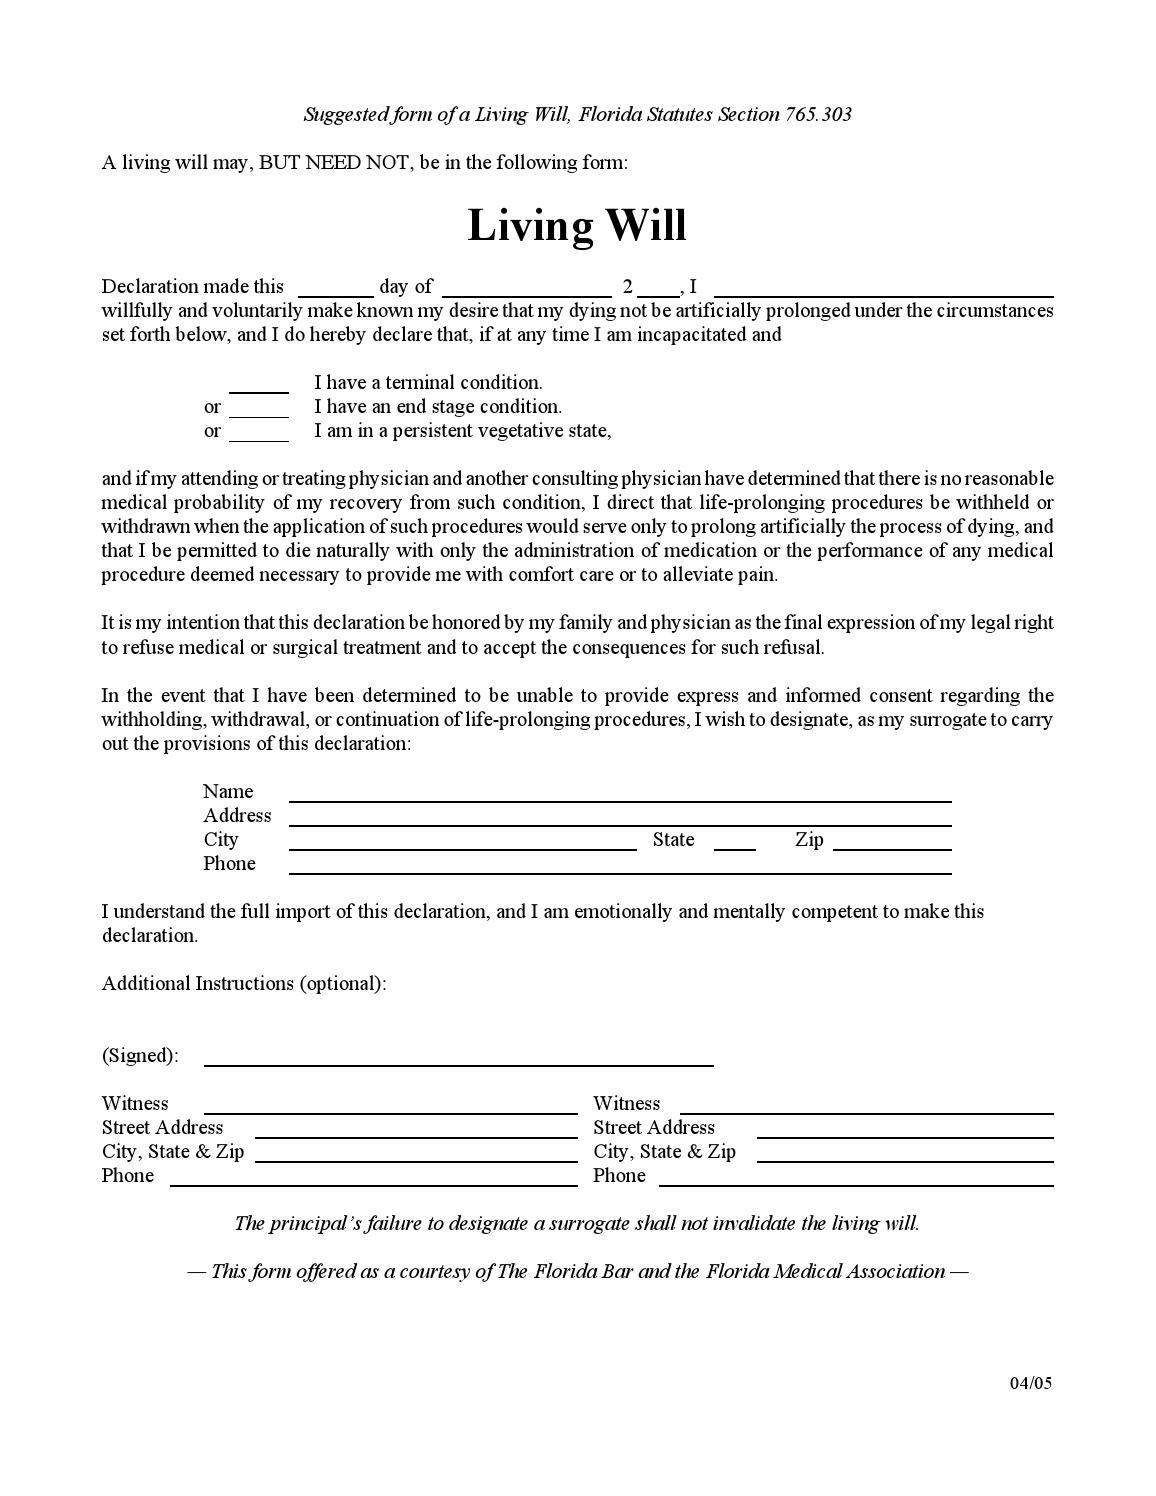 Florida living will by wfla newschannel8 issuu for Templates for wills free